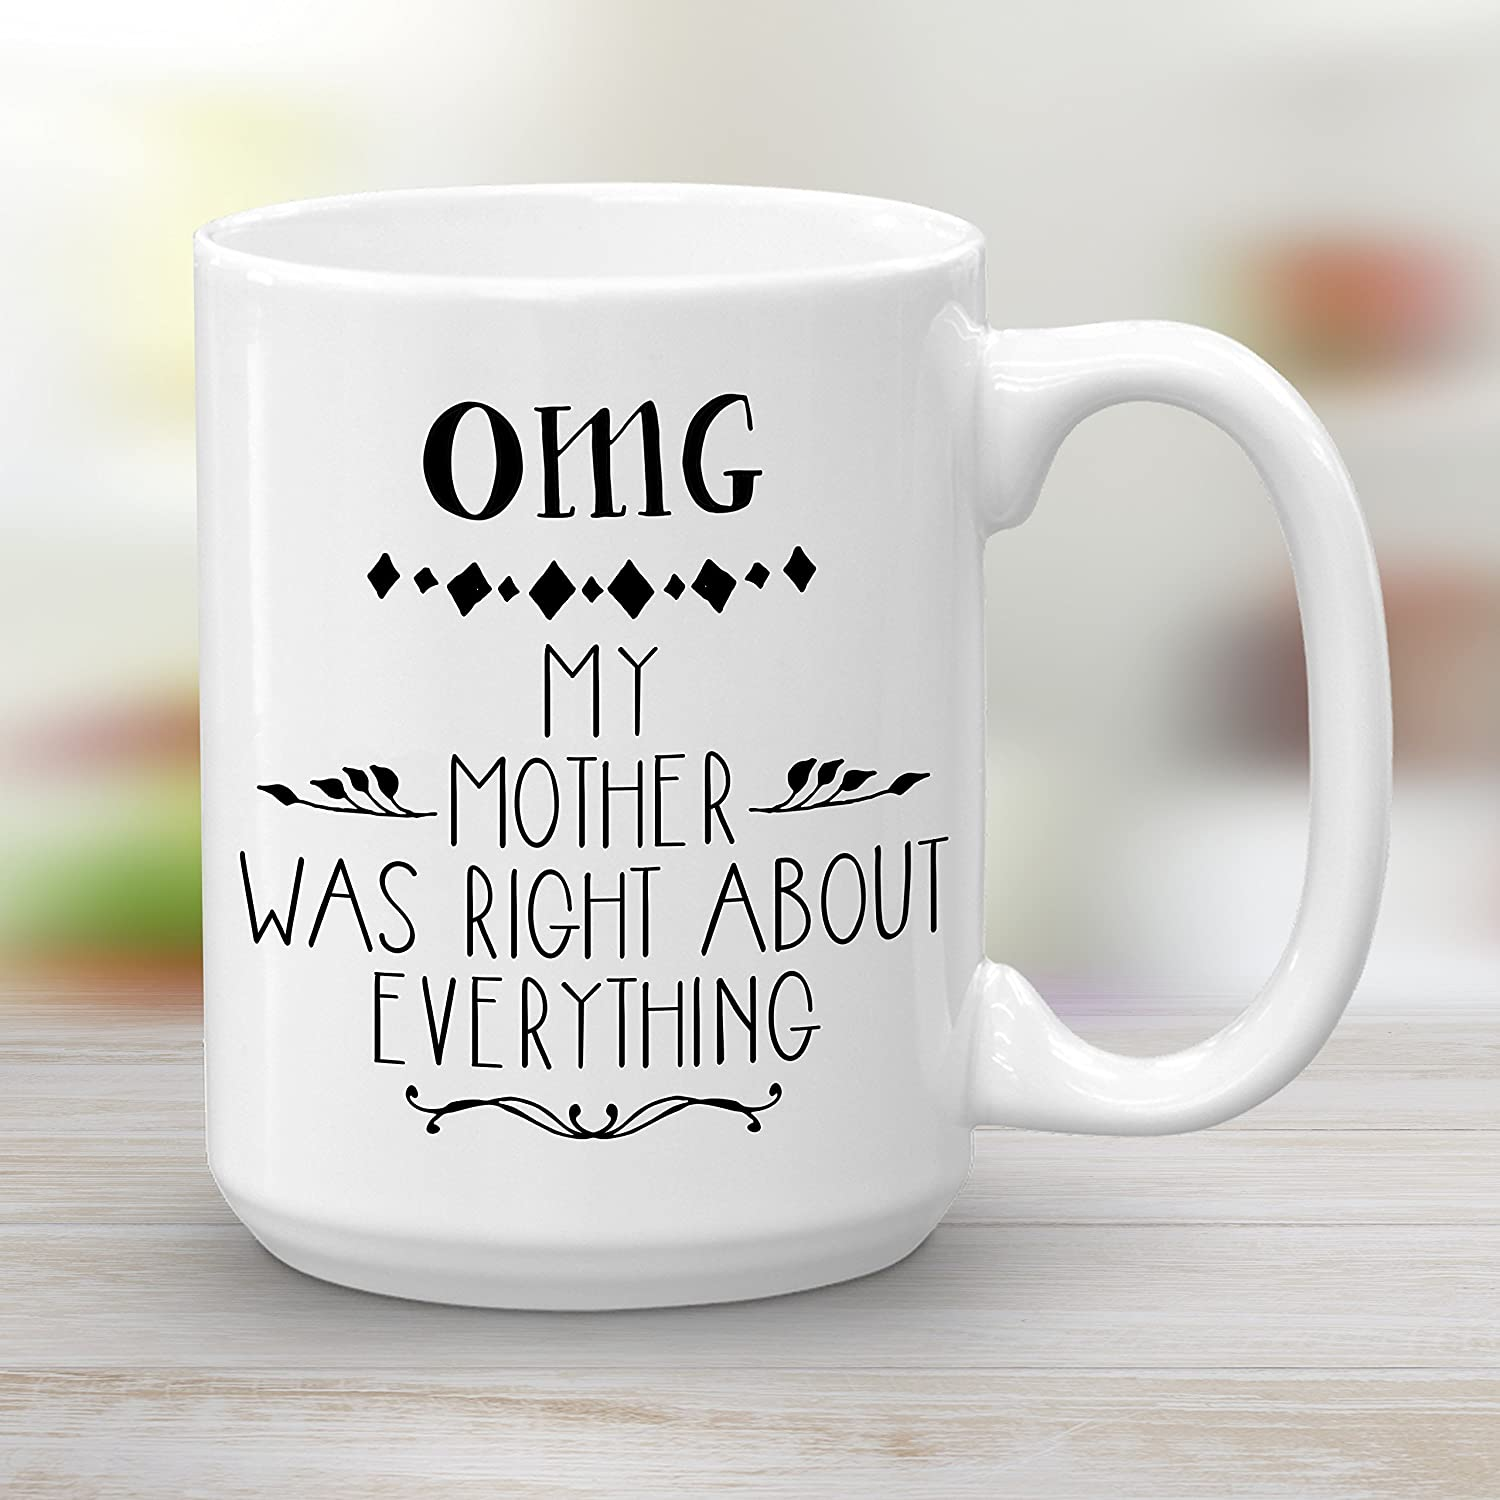 OMG My Mother Was Right About Everything, Mothers Day Gift, Ceramic Coffee Mug